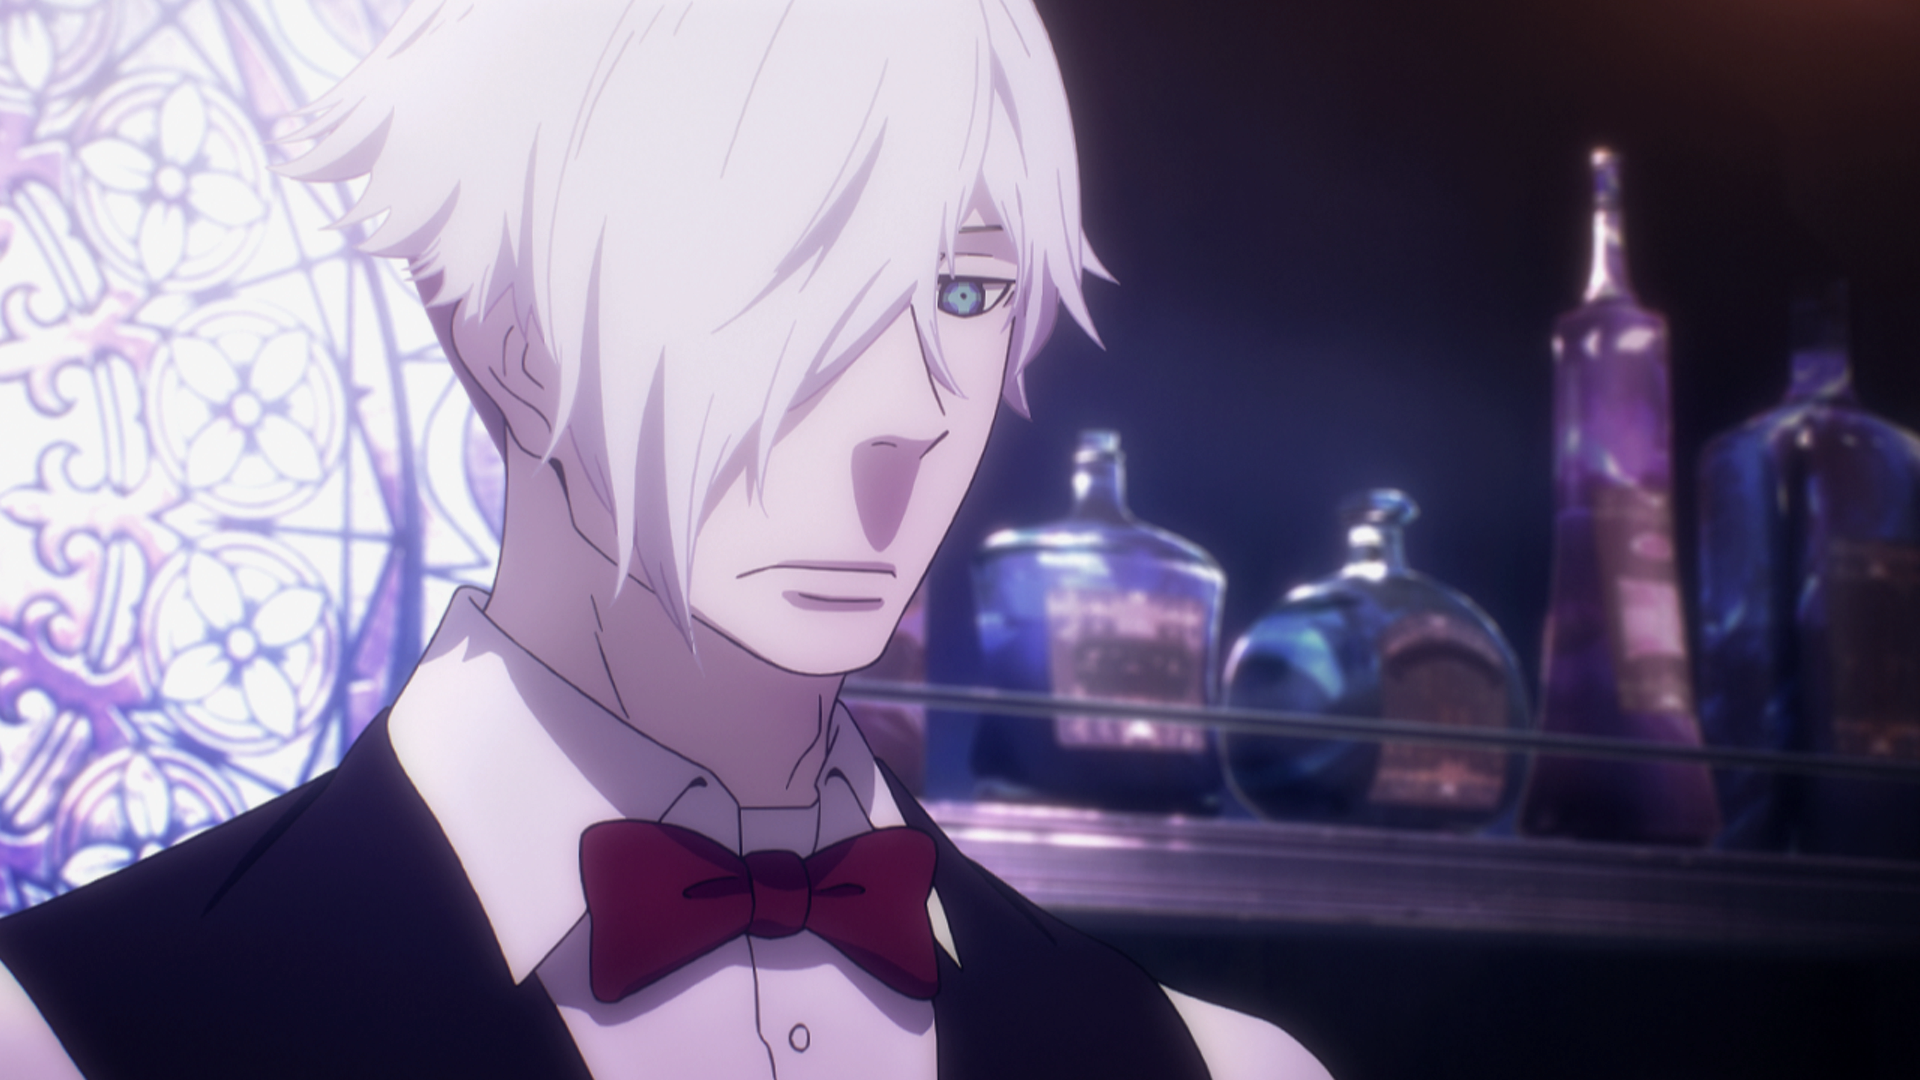 What Are You Watching? Death Parade